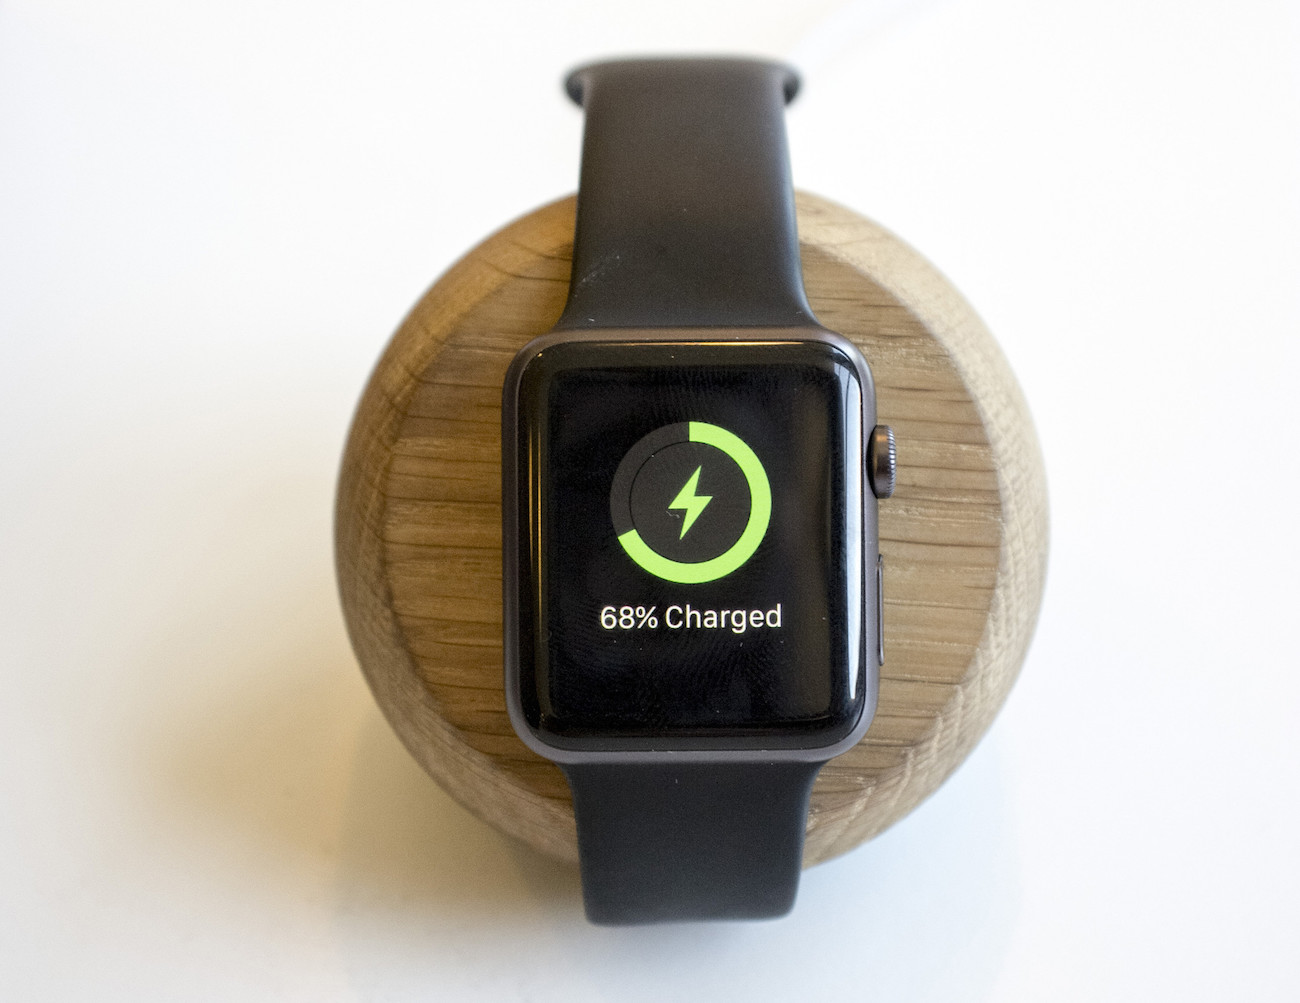 Chestnut Smartwatch Dock from ENVEO